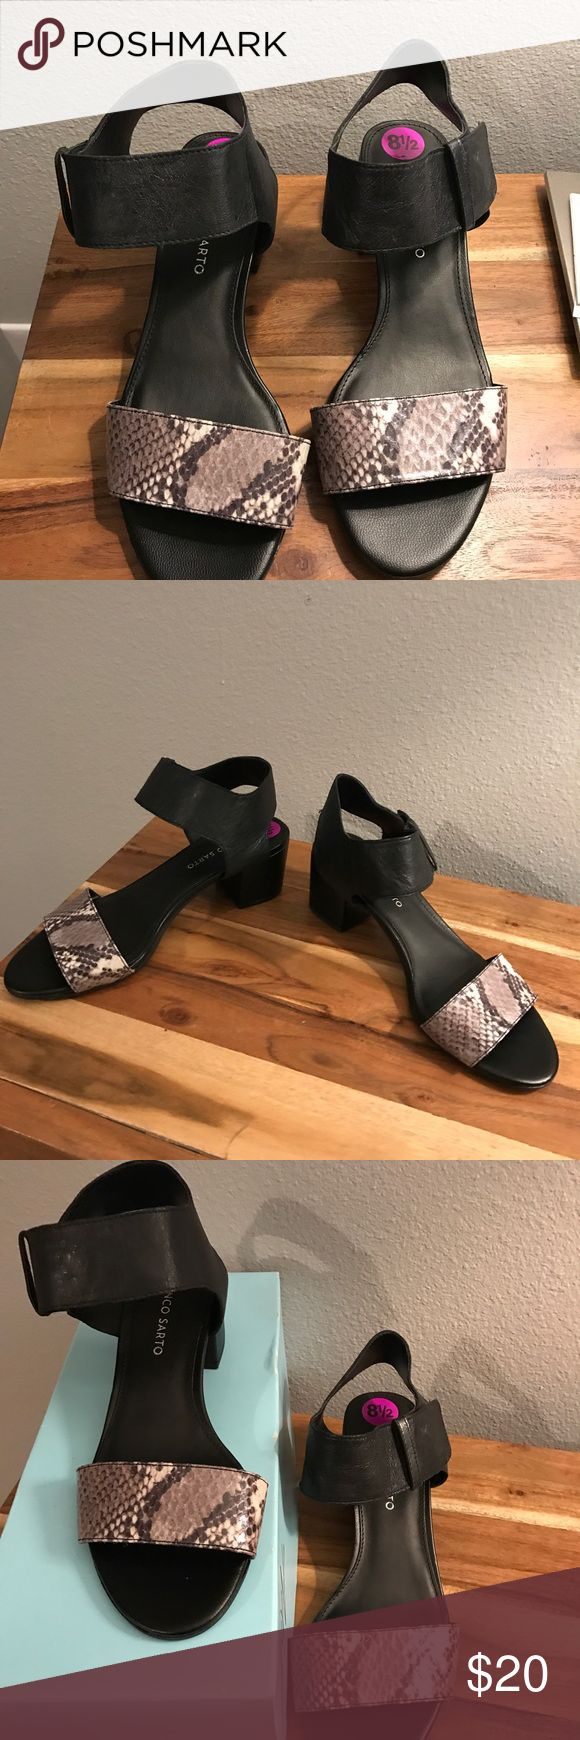 Black with gray/white leather/manmade upper. New. Never been worn. Leather/manmade upper with Velcro tie. Franco Sarto Shoes Sandals